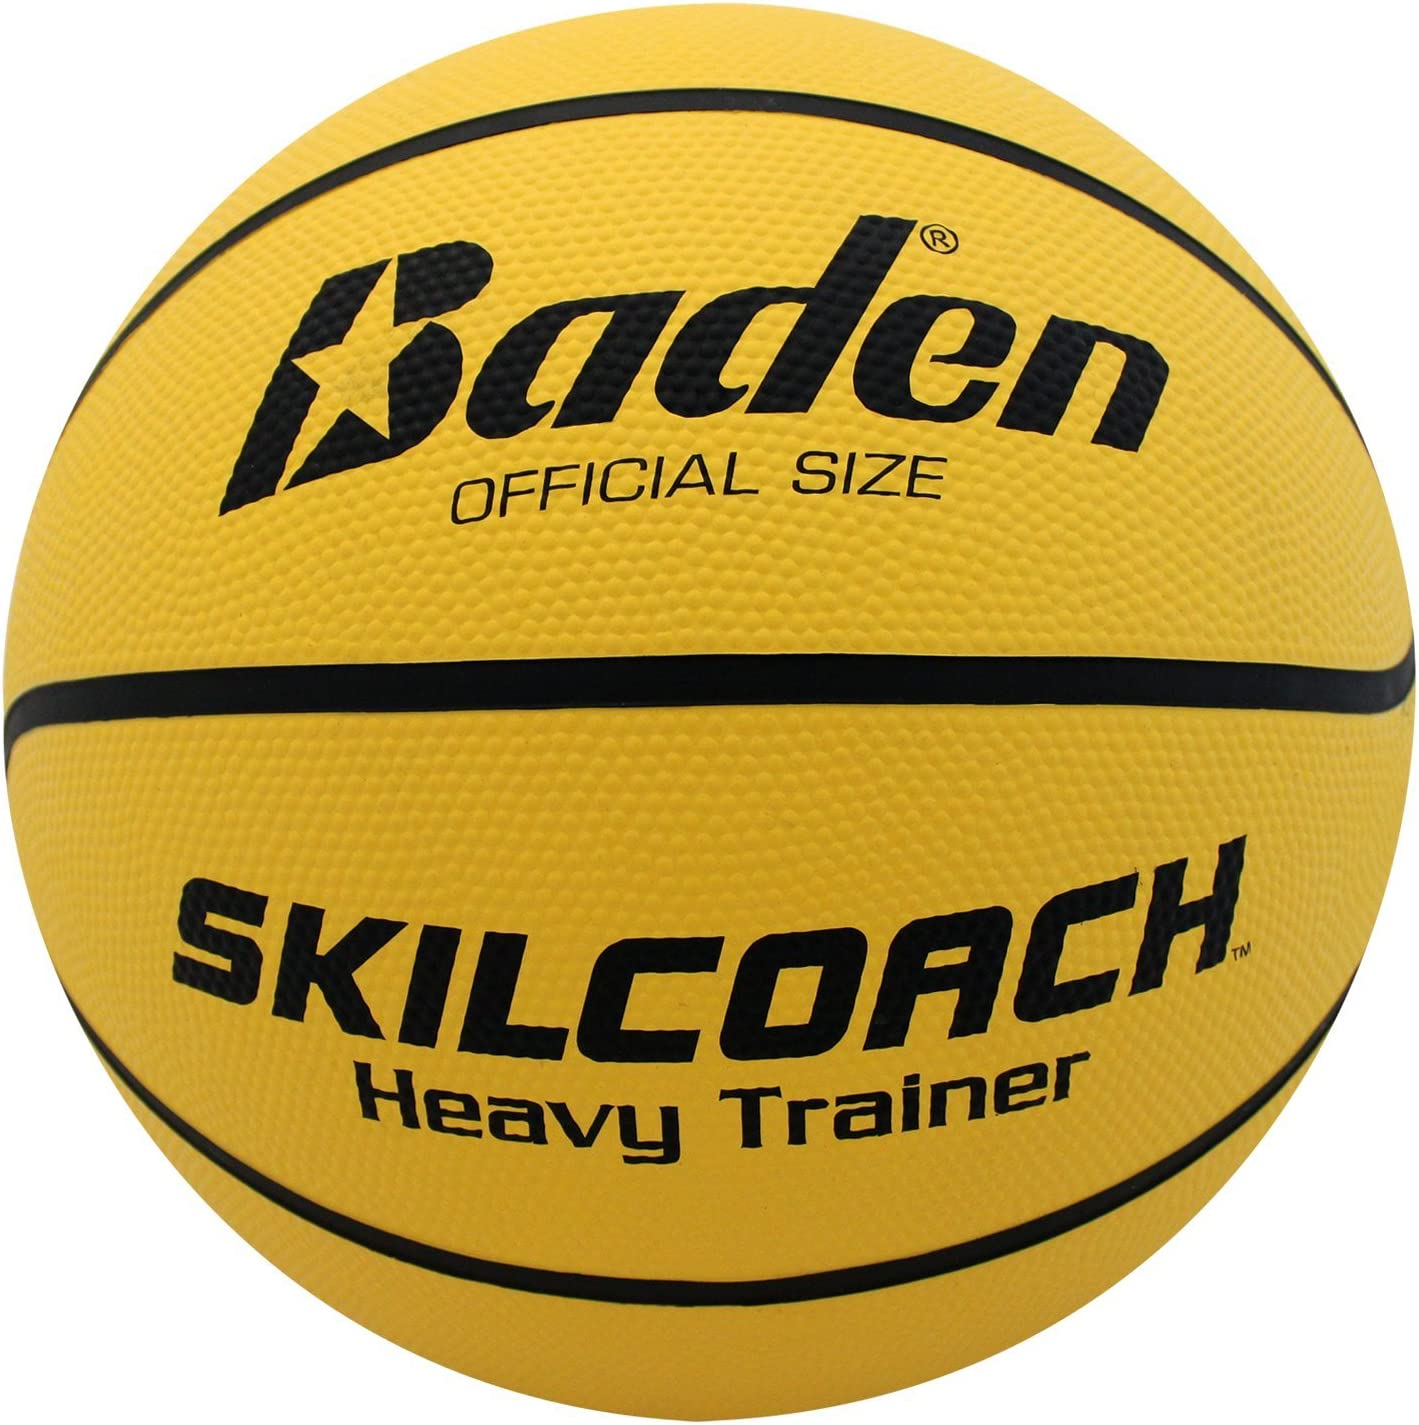 #3 Baden SkilCoach Heavy Trainer Rubber Basketball